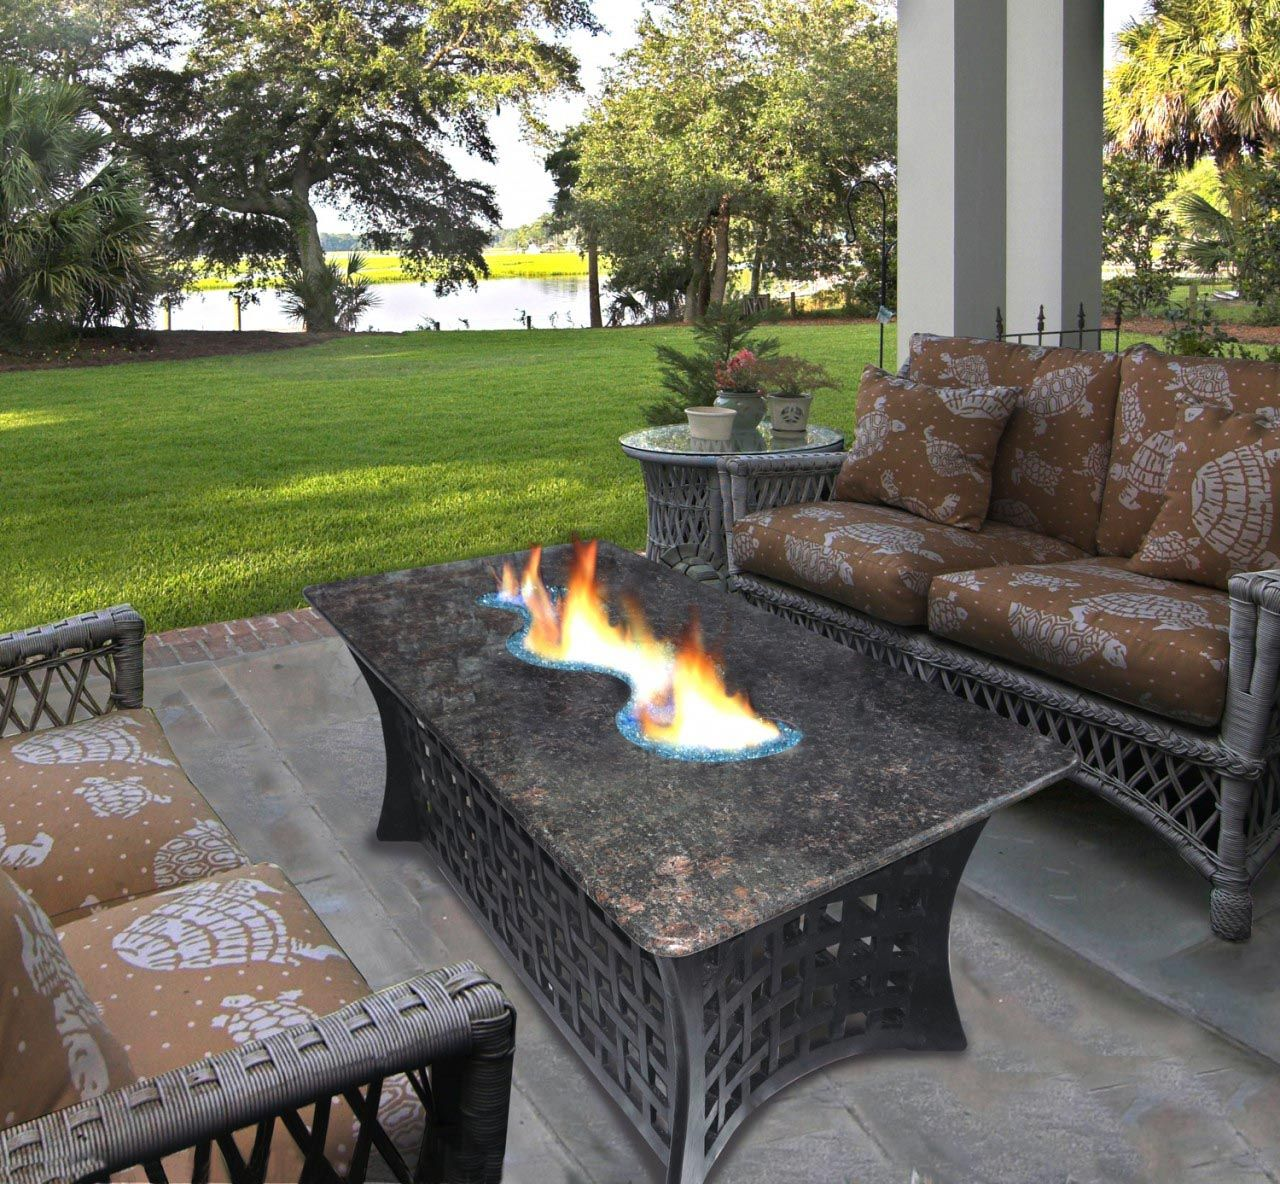 Outdoor Furniture Fire Pit Table and Chairs Fire Pit Pinterest